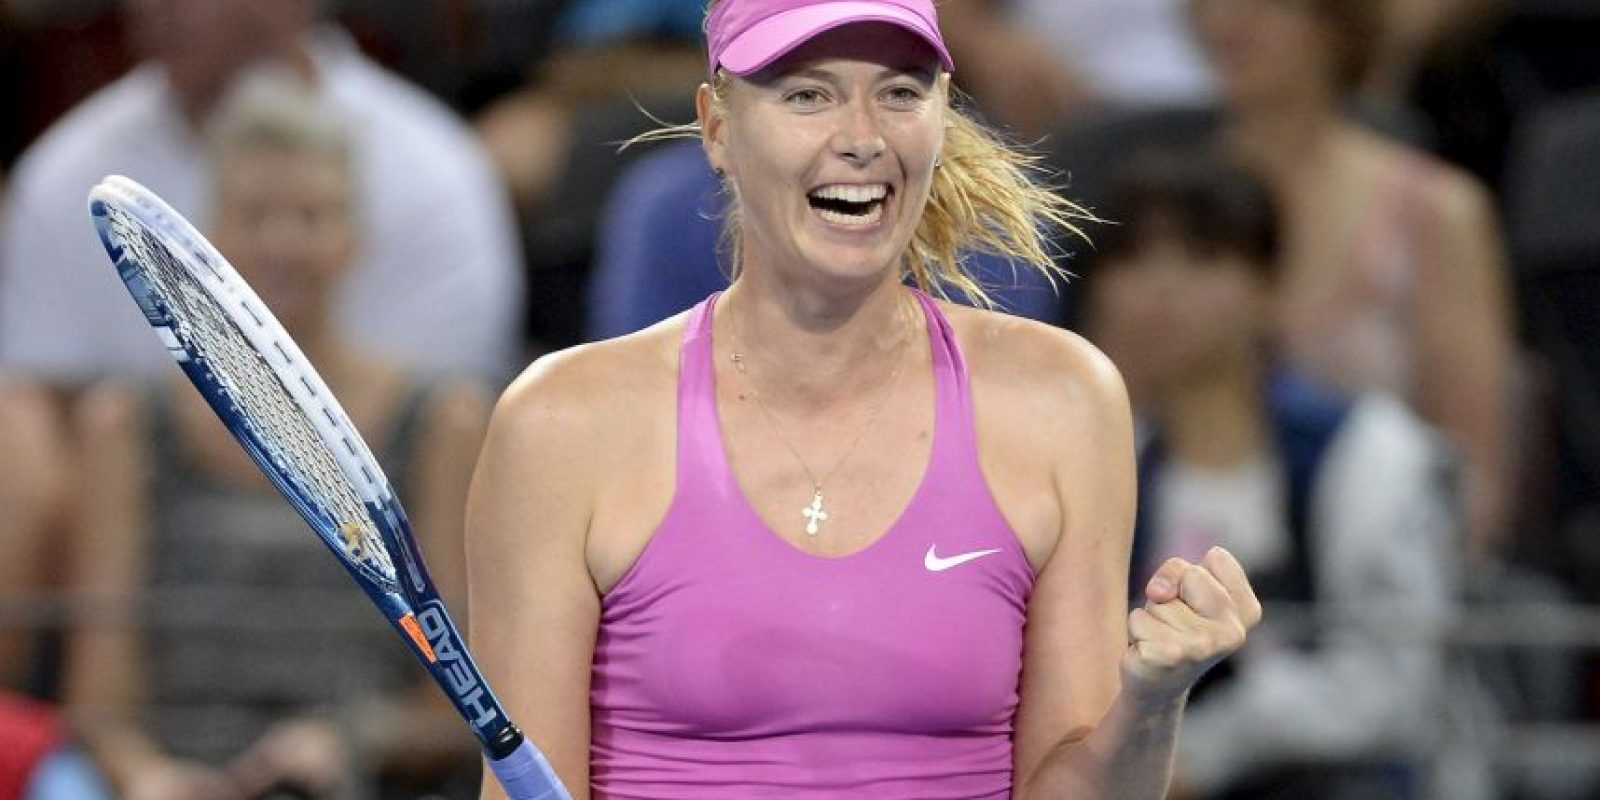 12. Maria Sharapova / Tenis Foto: Getty Images